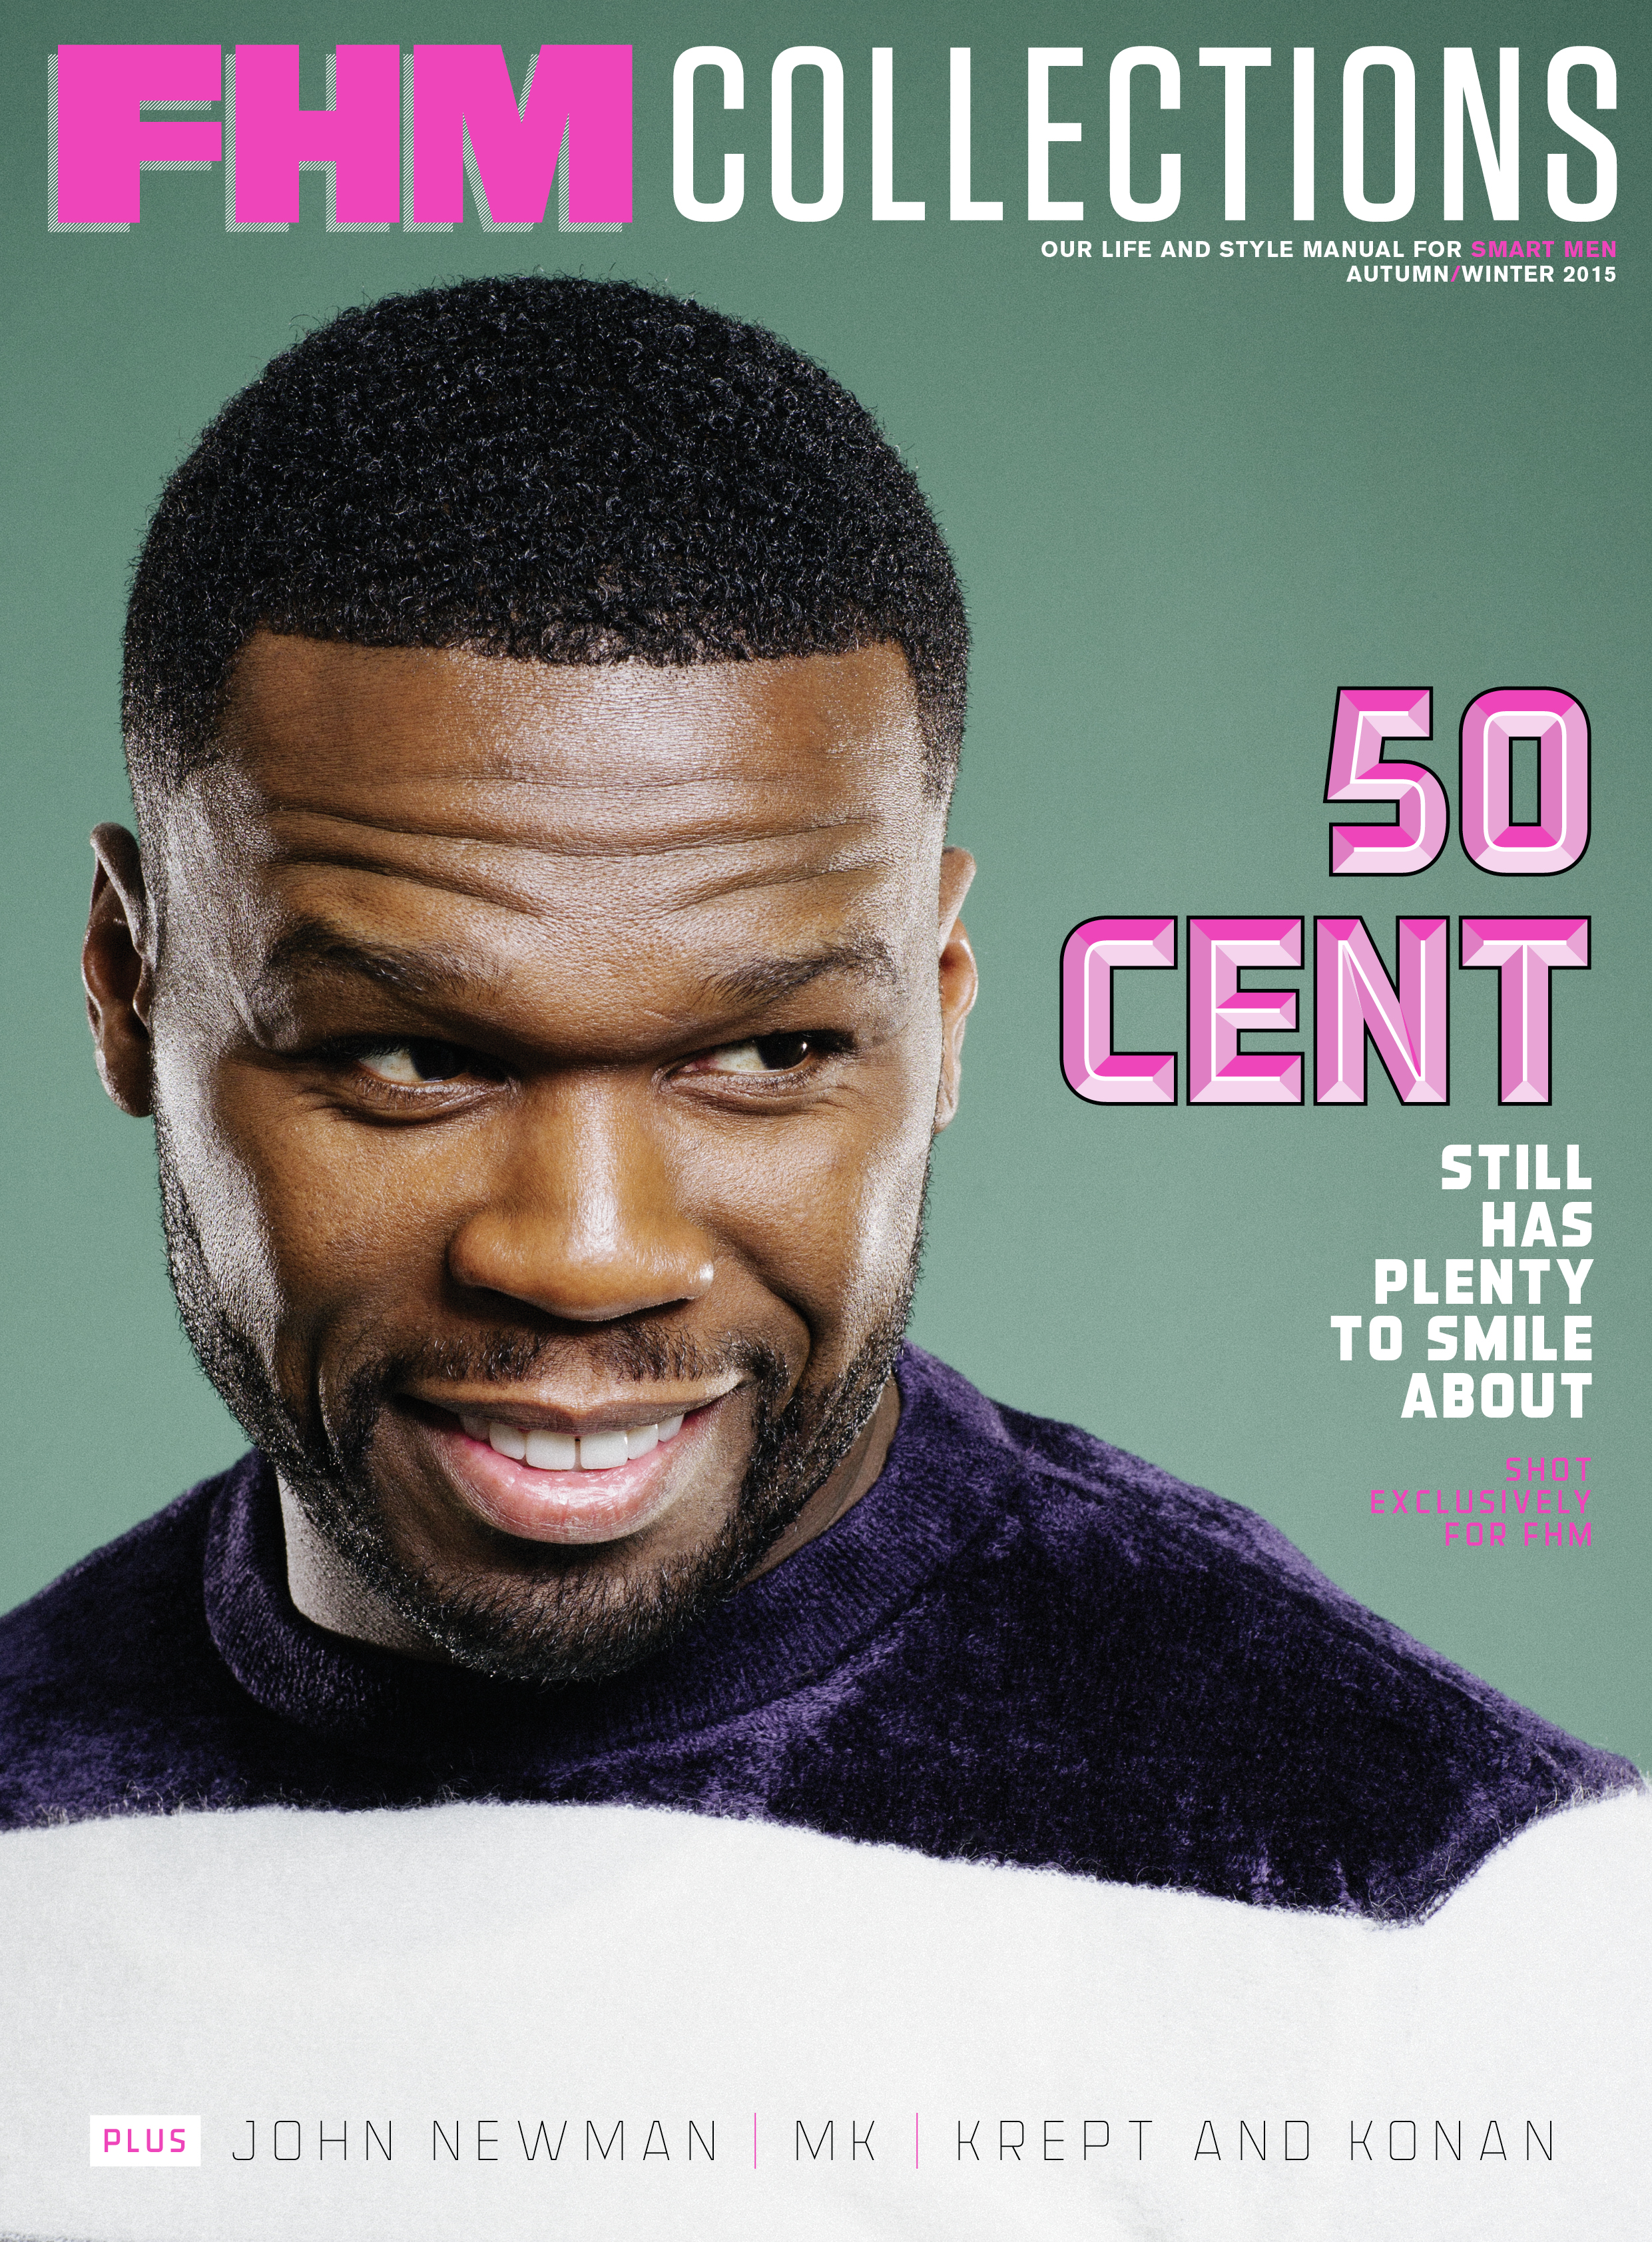 COLLECTIONS_COVER_FINAL_50_cent